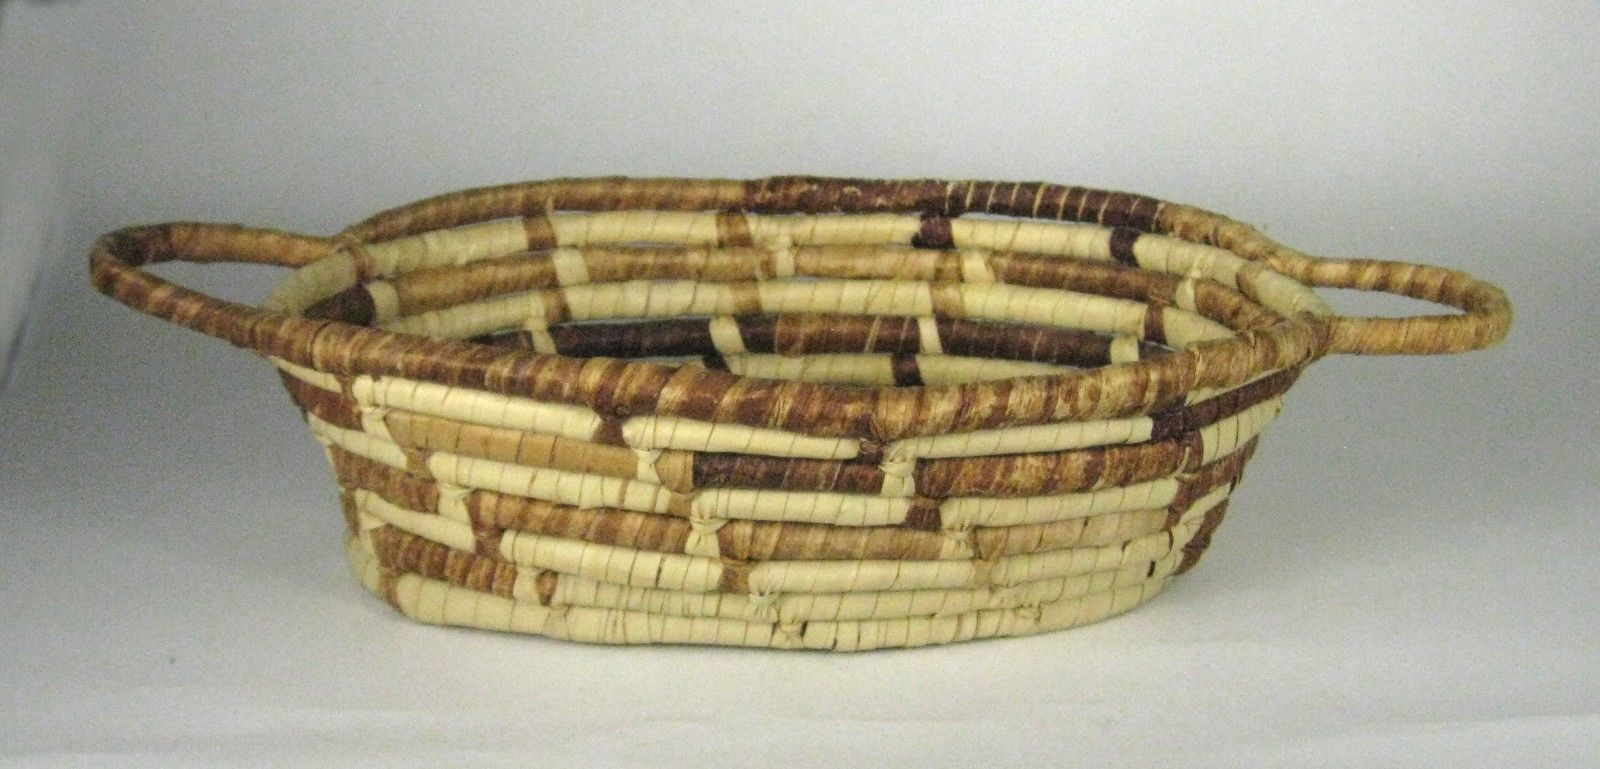 Coil Basket Hand Woven Grass Brown Tan Size 16.5 inches Coiled 2 Handles